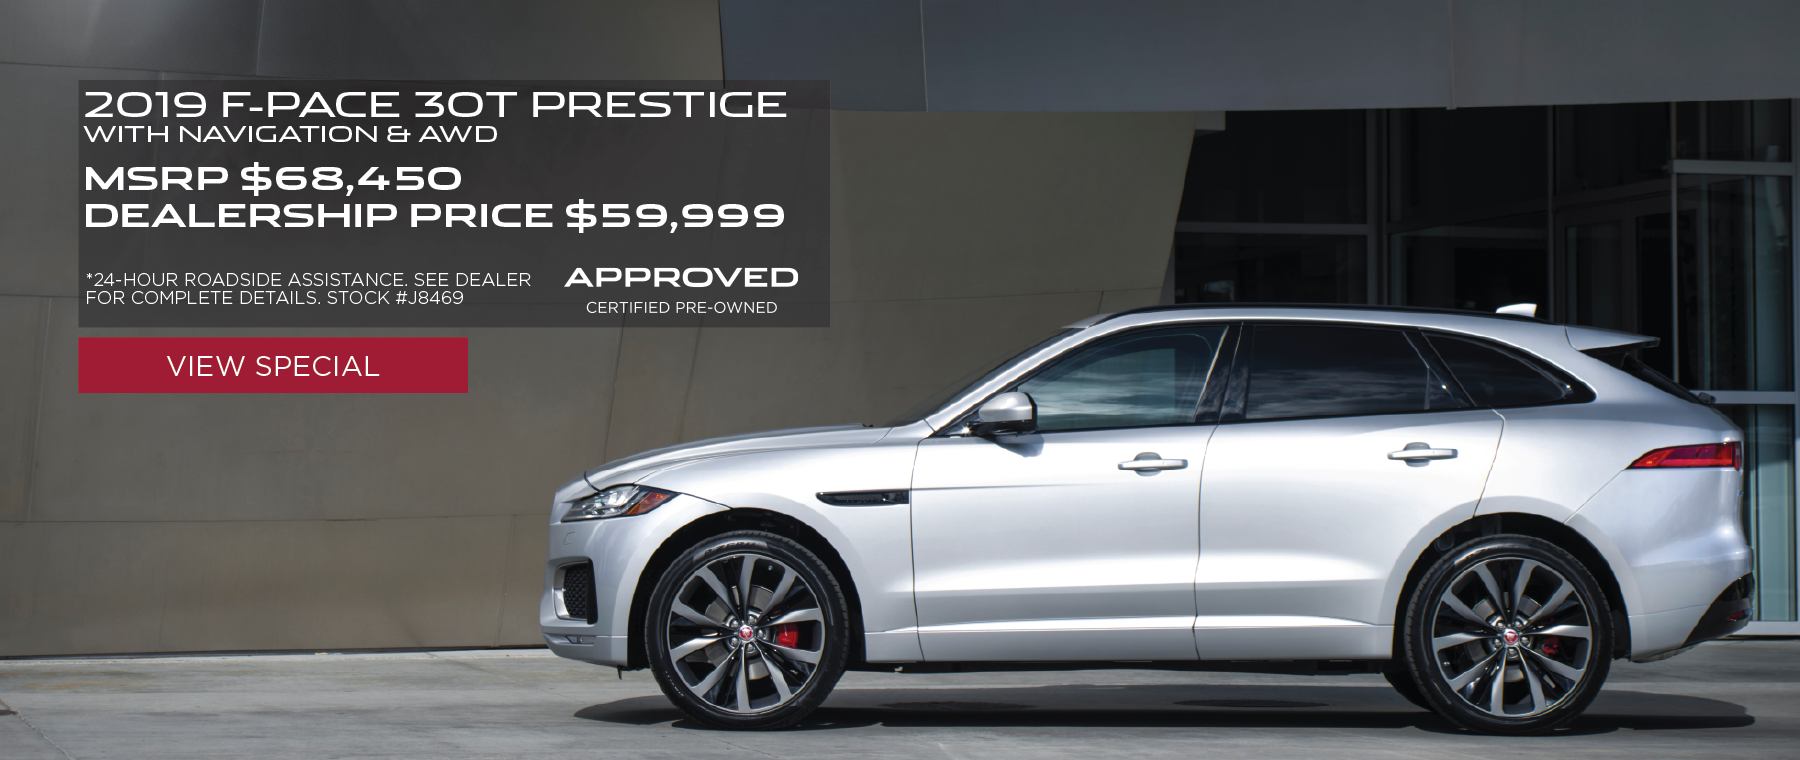 Stock #J8496 – Silver 2019 F-PACE 30t Prestige with Navigation & AWD in front of building. See dealer for complete details. *24 hour roadside assistance. MSRP $68,450 Dealership price $59,999.